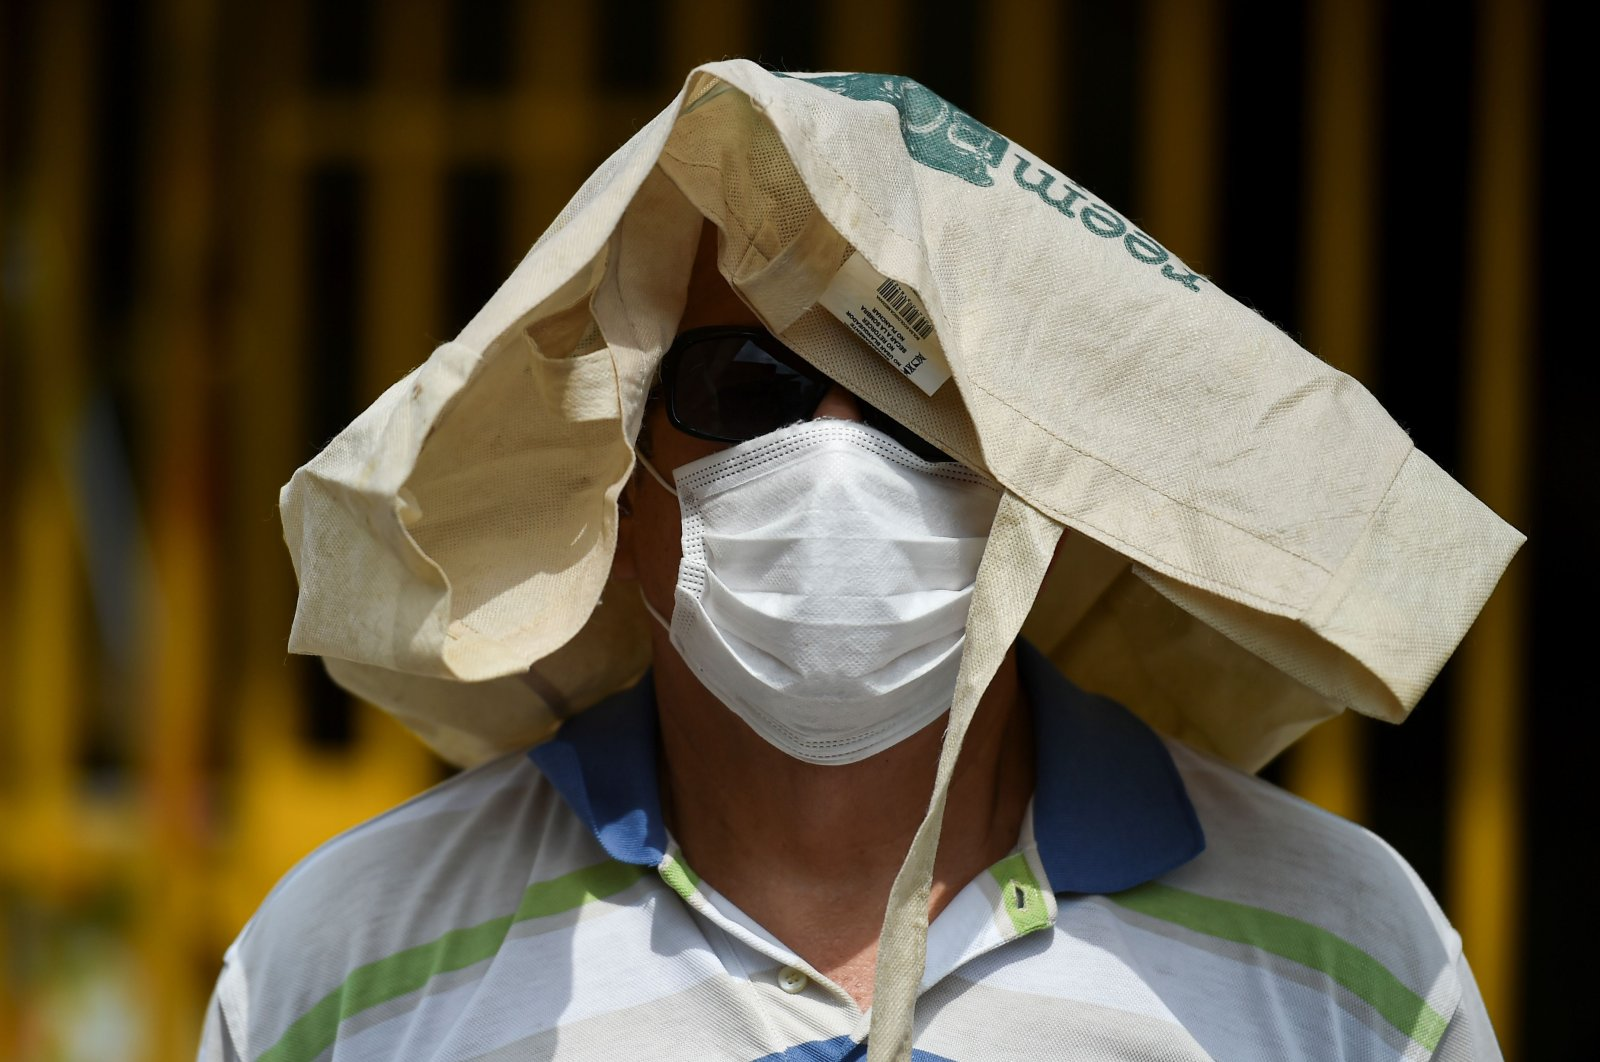 A man wears a face mask as a preventive measure against the spread of the novel coronavirus, COVID-19, as he lines up outside a supermarket in Cali, Colombia, on April 6, 2020. (AFP Photo)